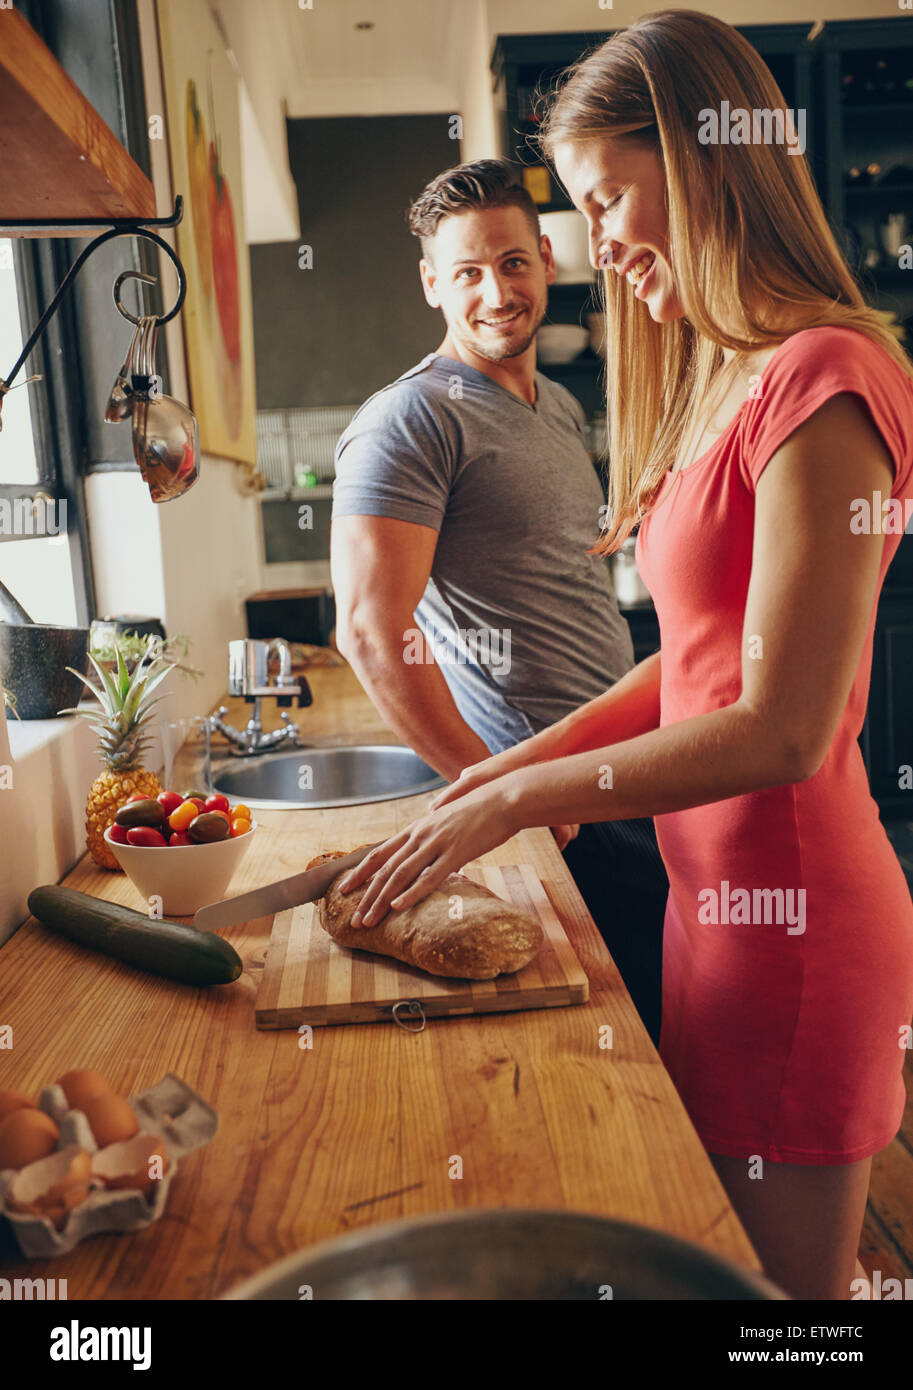 Caucasian couple together in the kitchen in morning. Focus on young woman cutting bread, while her husband standing - Stock Image